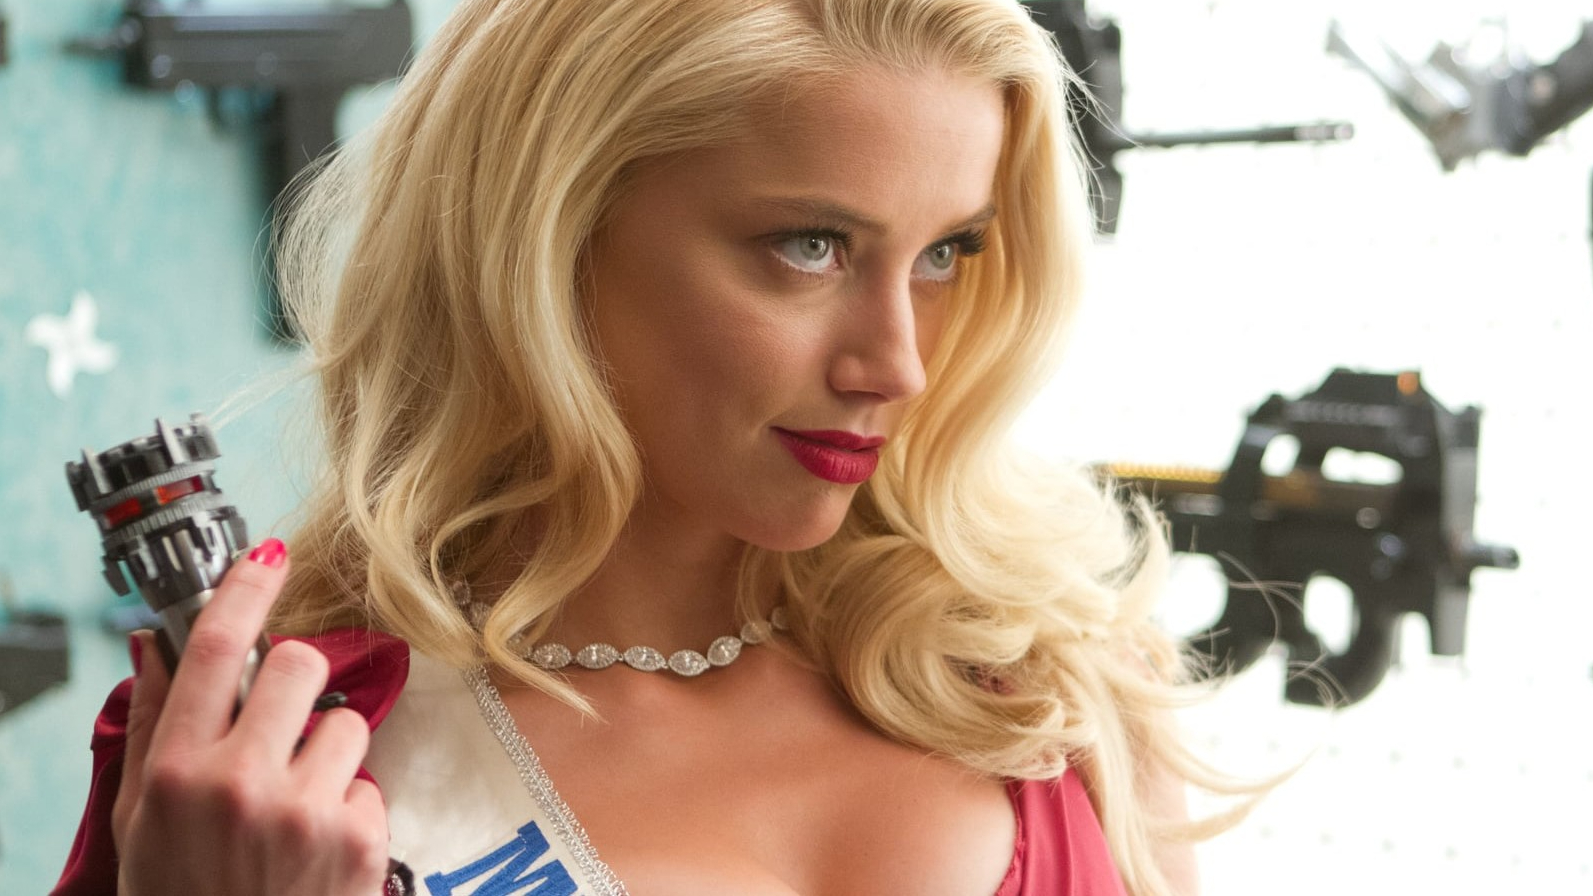 Amber Heard To Take Over Pirates Of The Caribbean From Johnny Depp